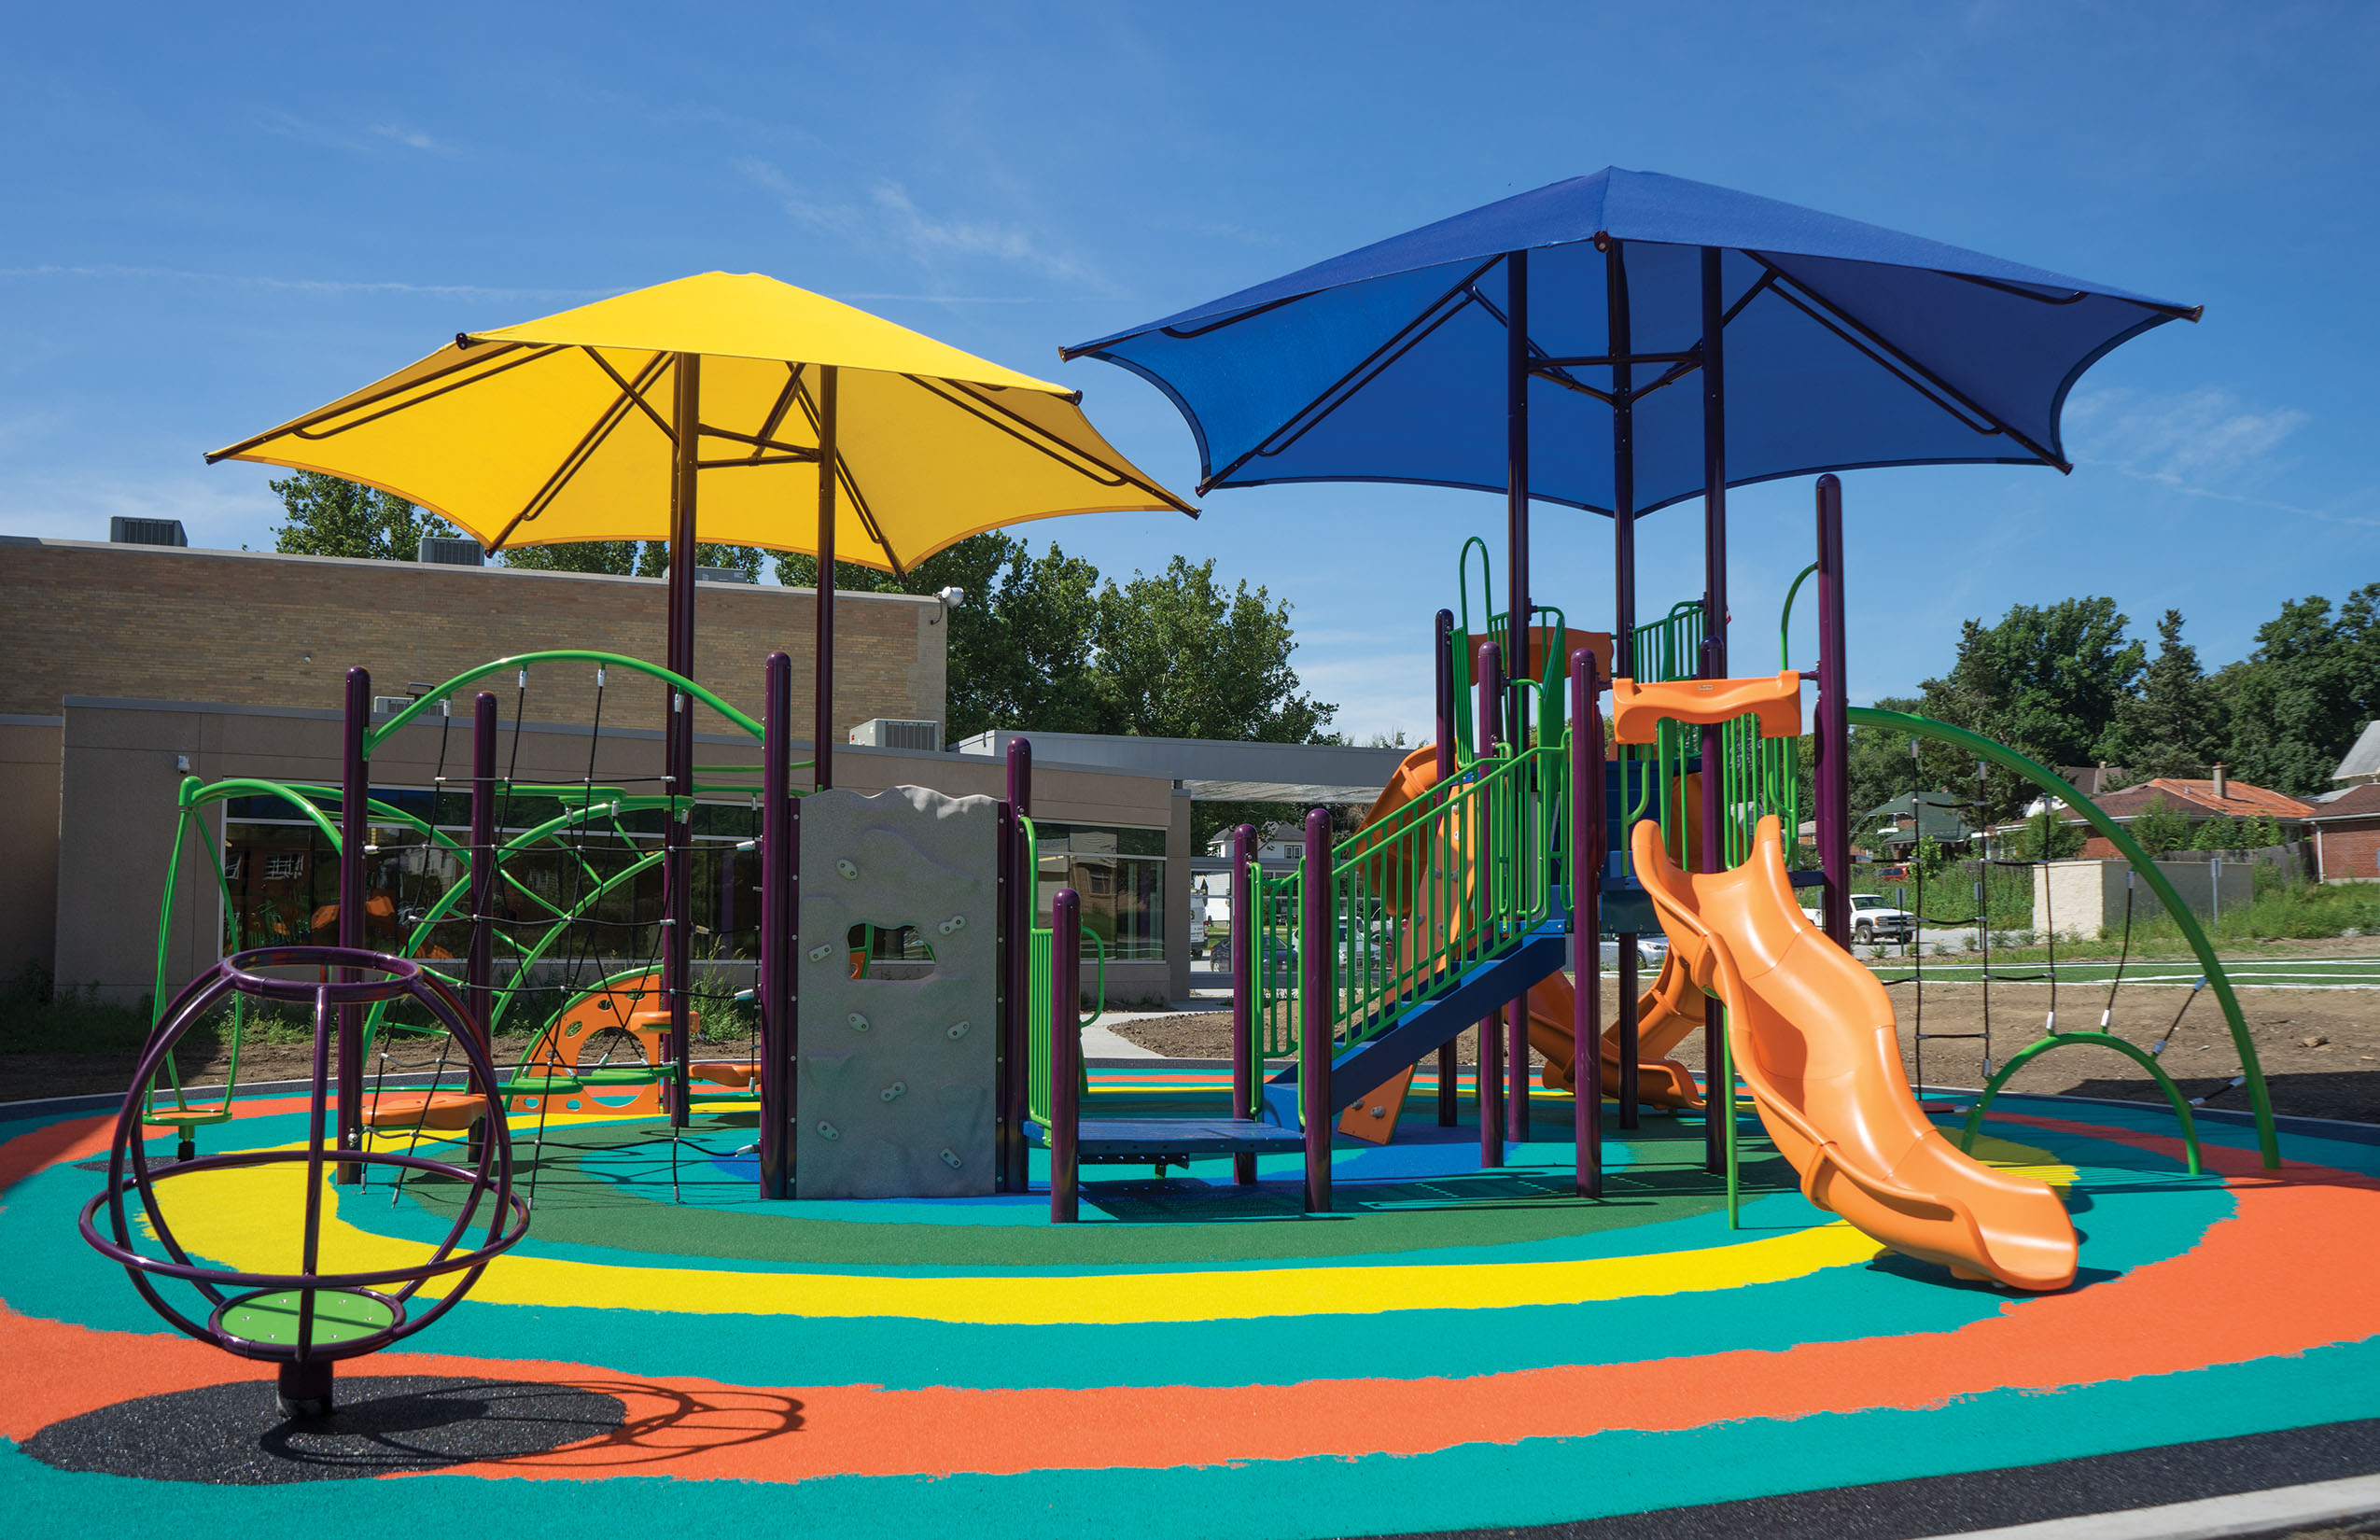 Hexagon Shade Canopies & Shade Canopies for Playgrounds